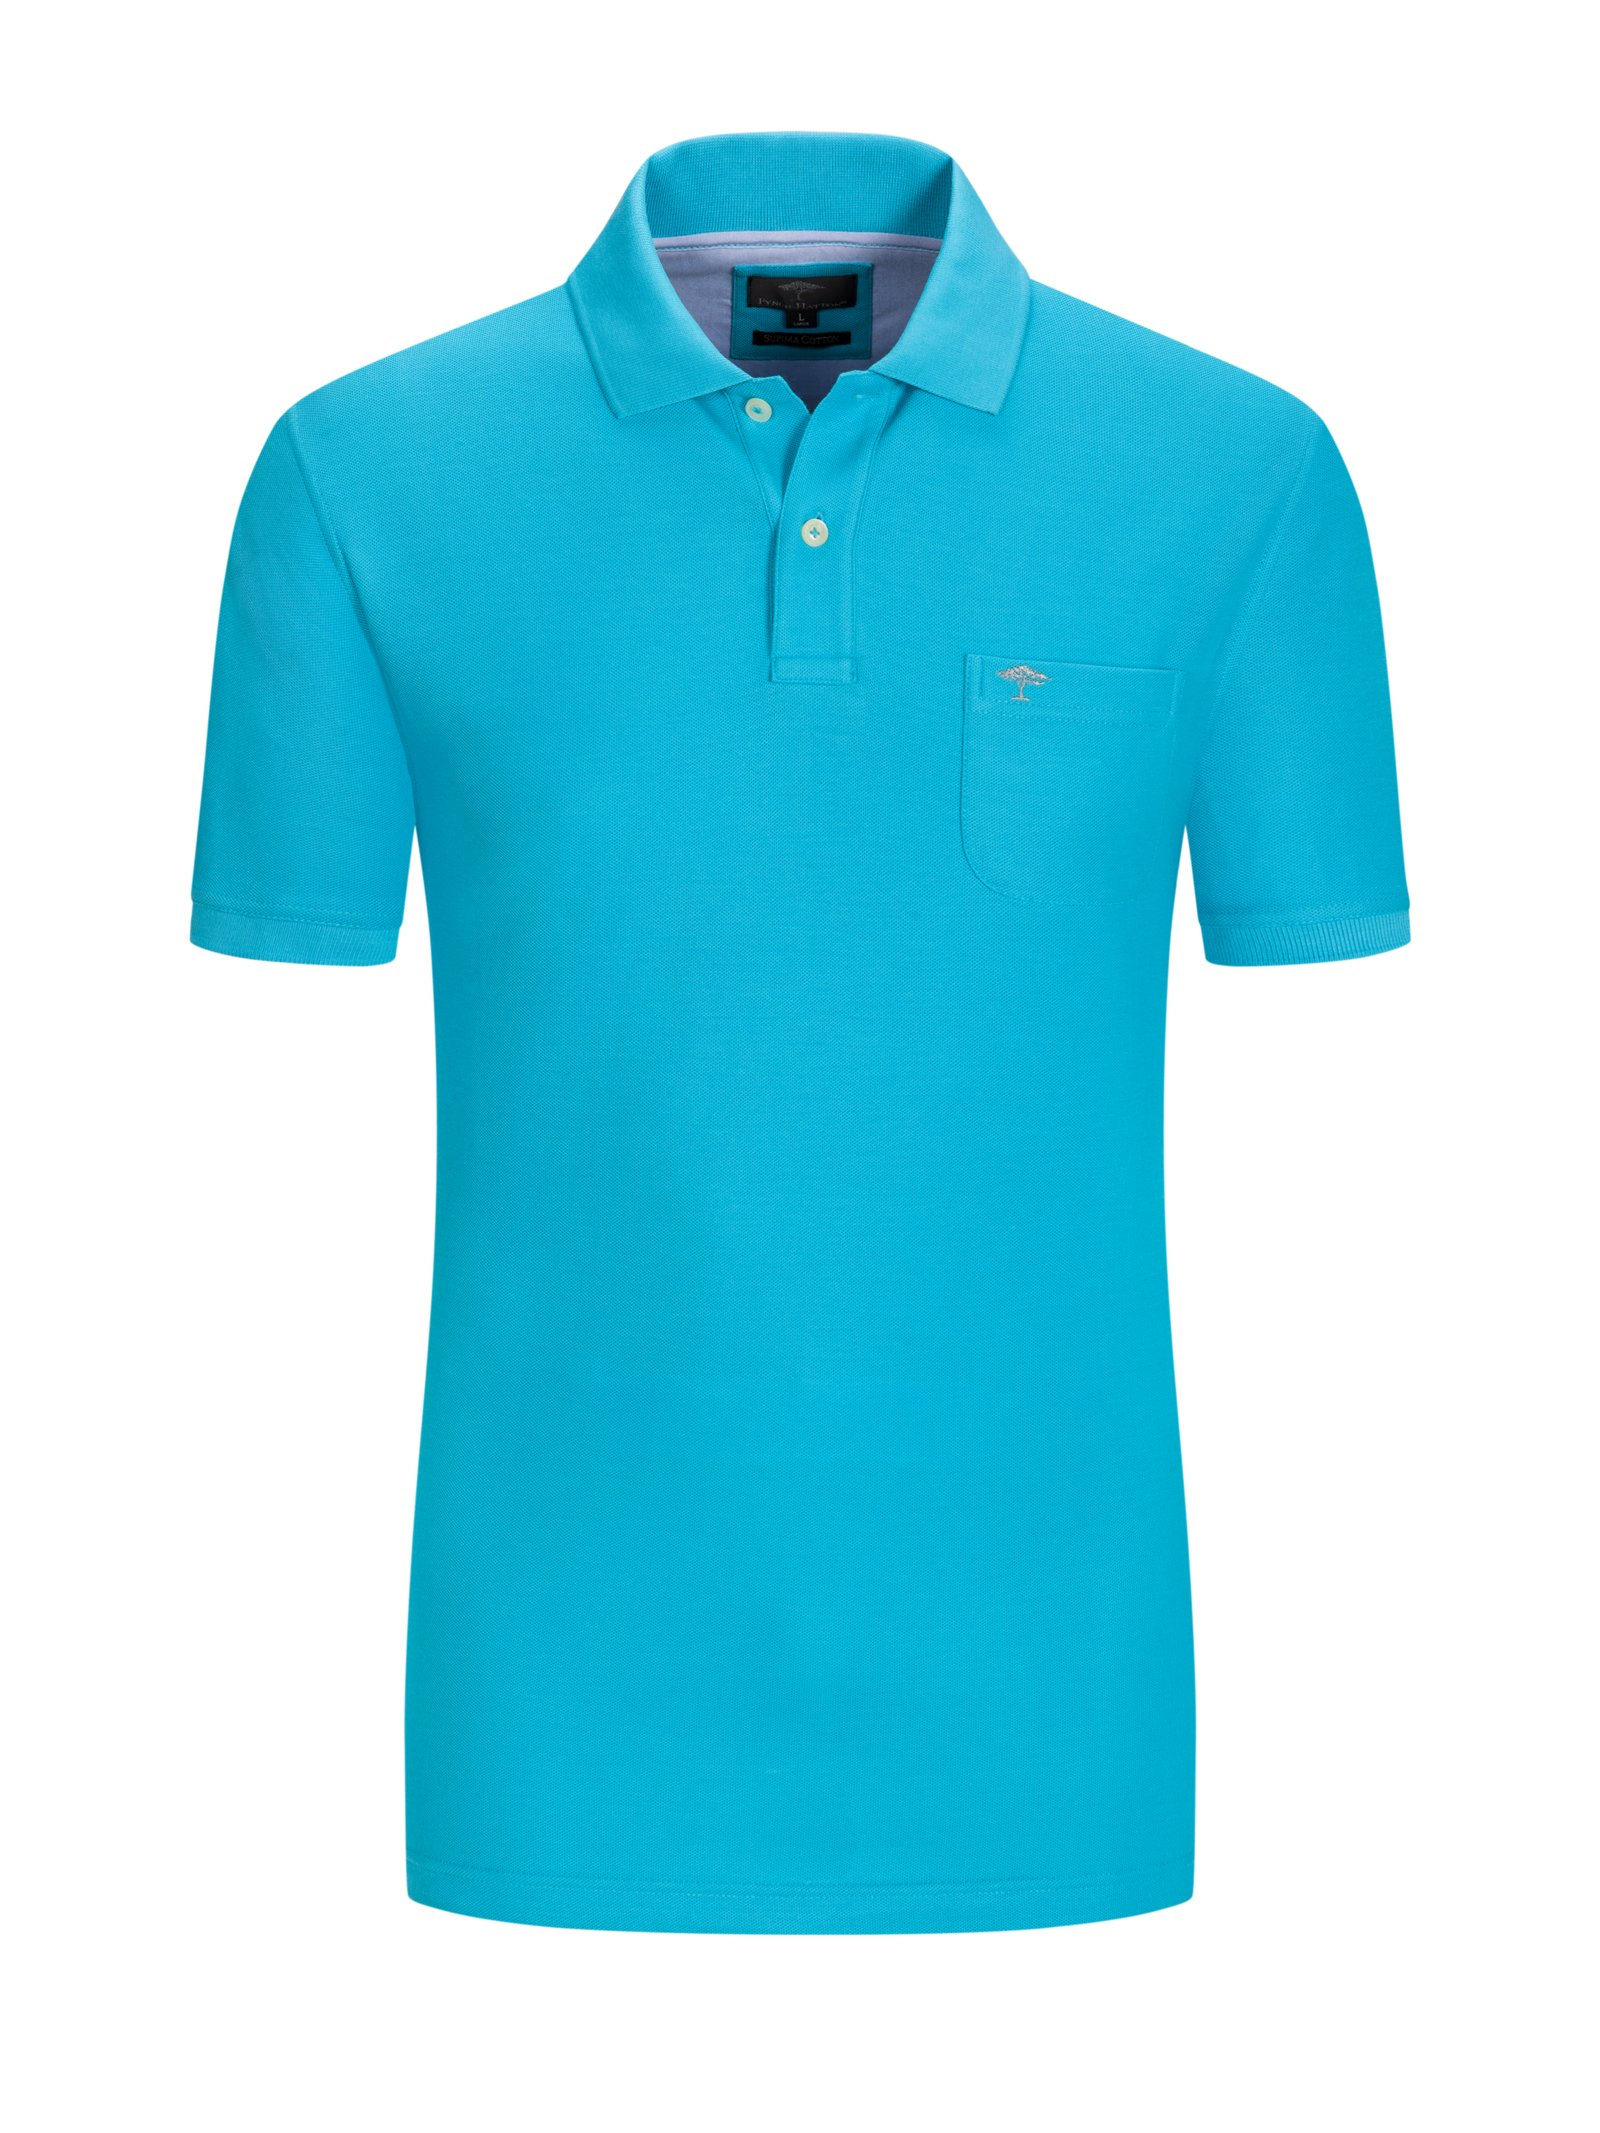 Polo shirt in 100% cotton with breast pocket, turquoise*